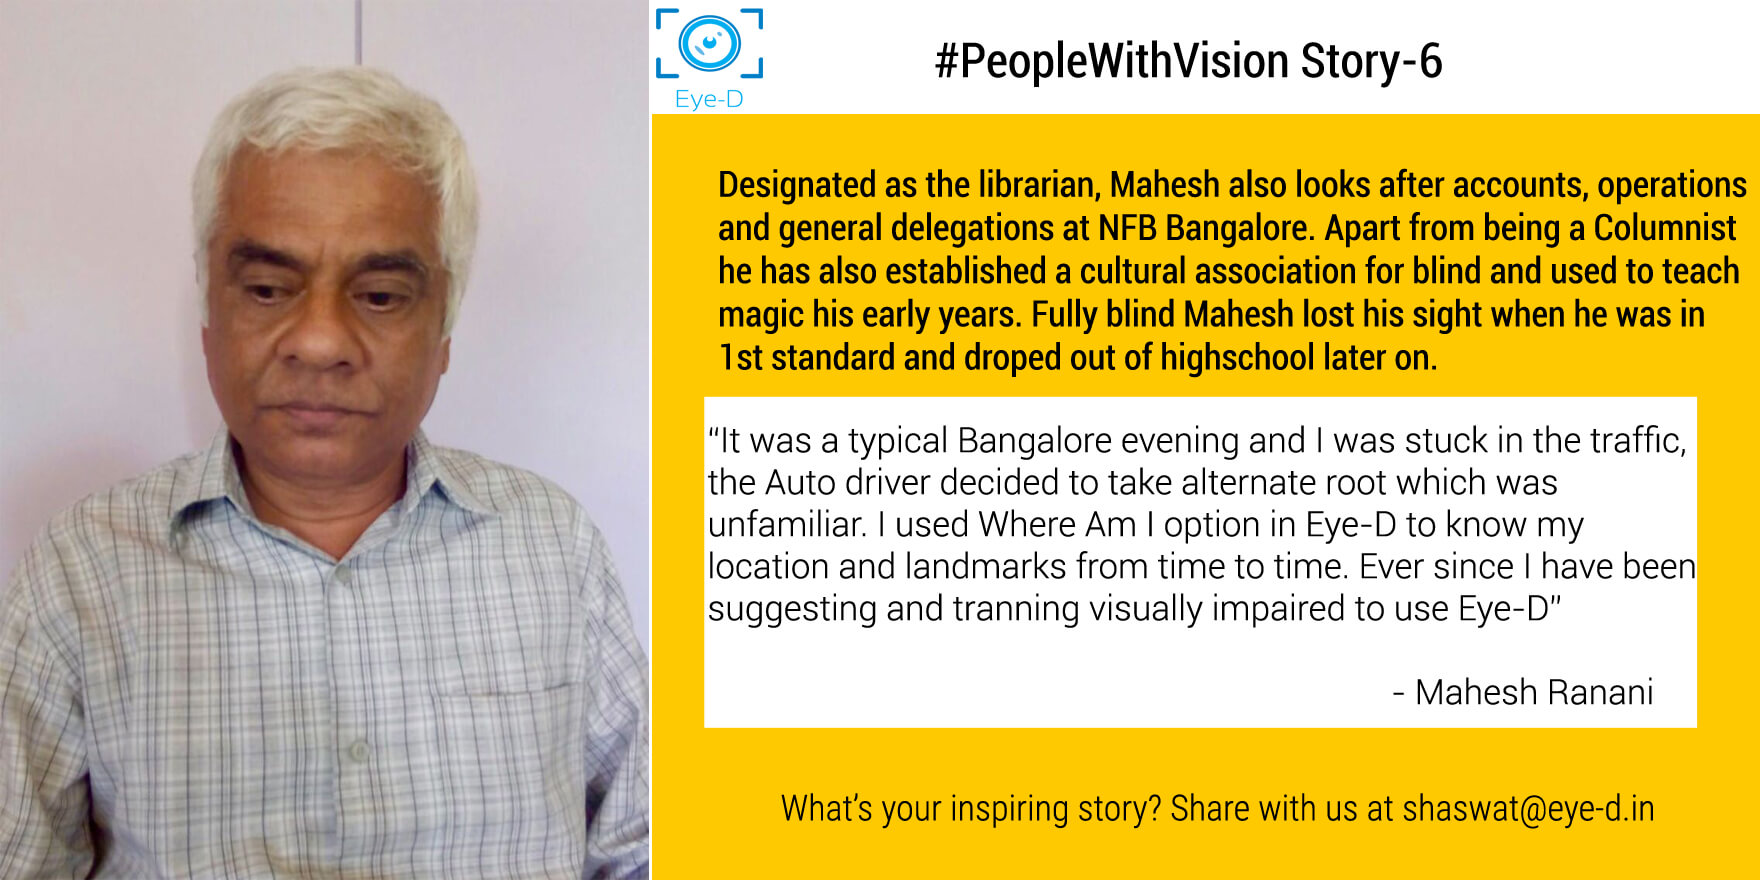 Mahesh works as a librarian at NFB Bangalore. Belonging to a business family Mahesh was earlier involved in family business before dedicating himself fully towards this social work. Mahesh says he found Eye-D App really helpful to be location aware while he was travelling alone and was stuck in the traffic. Since then he has been teaching people to use Eye-D app.